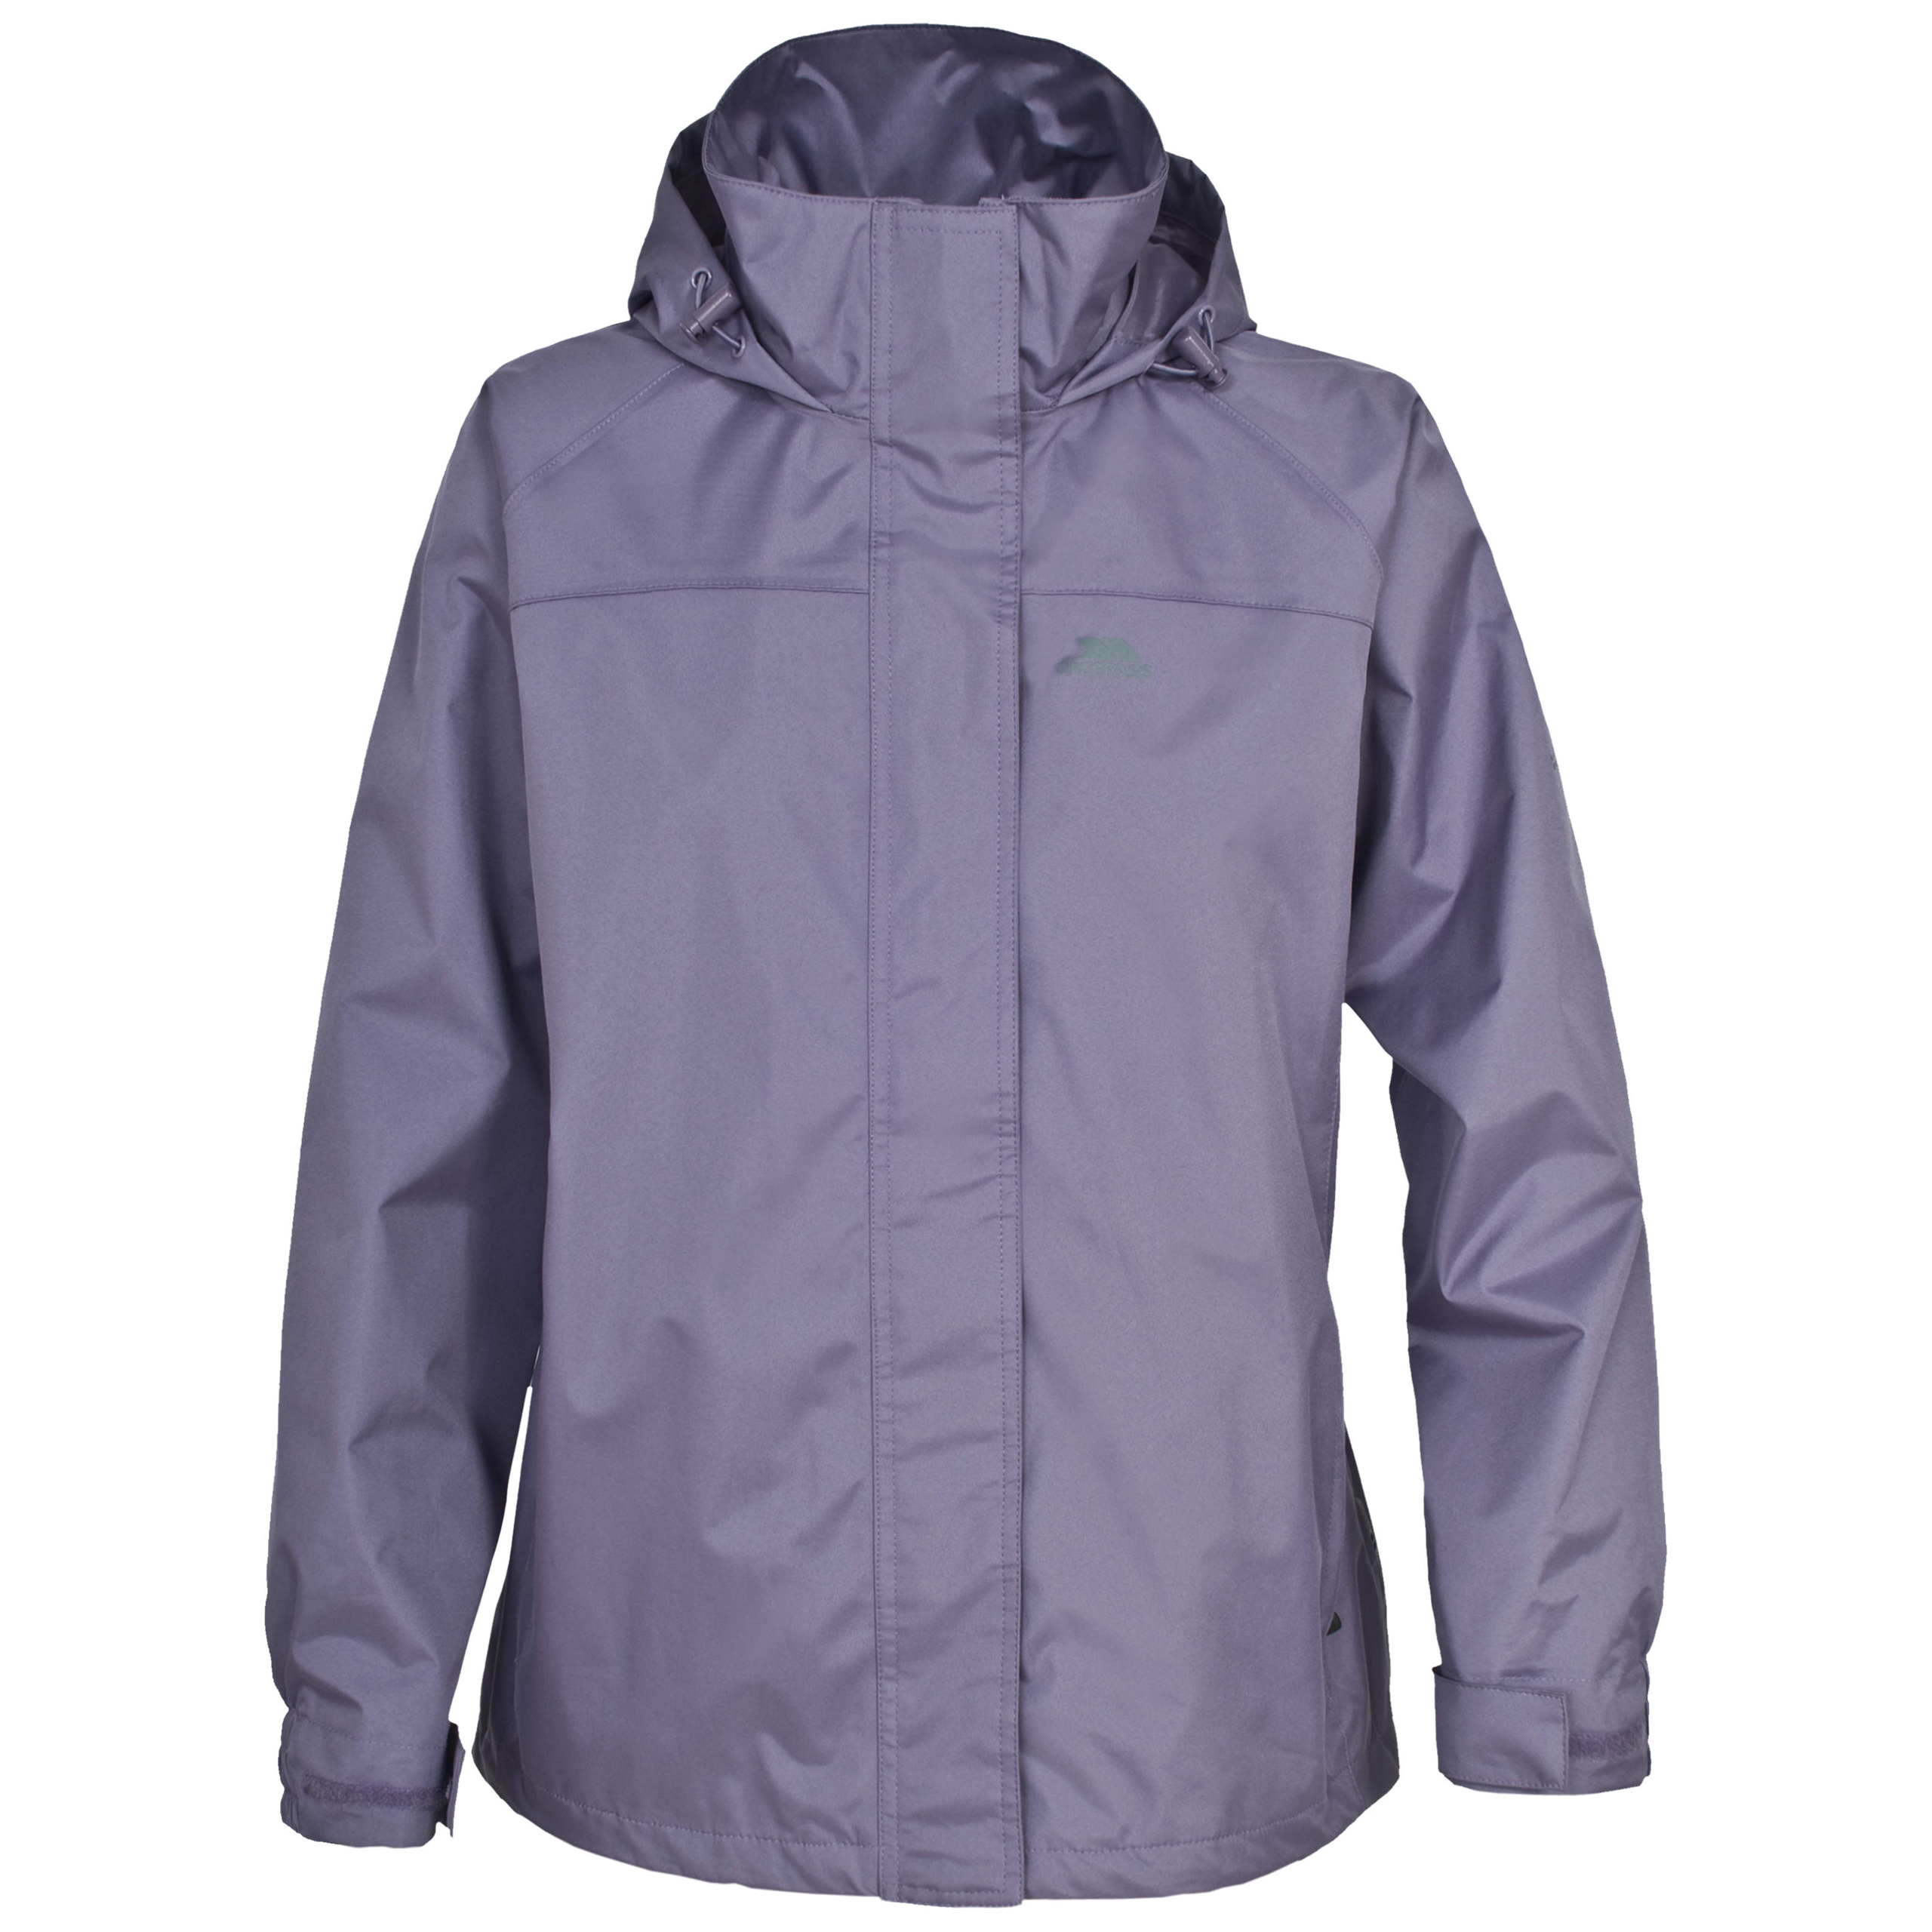 Free shipping and returns on Women's Waterproof Coats, Jackets & Blazers at taradsod.tk